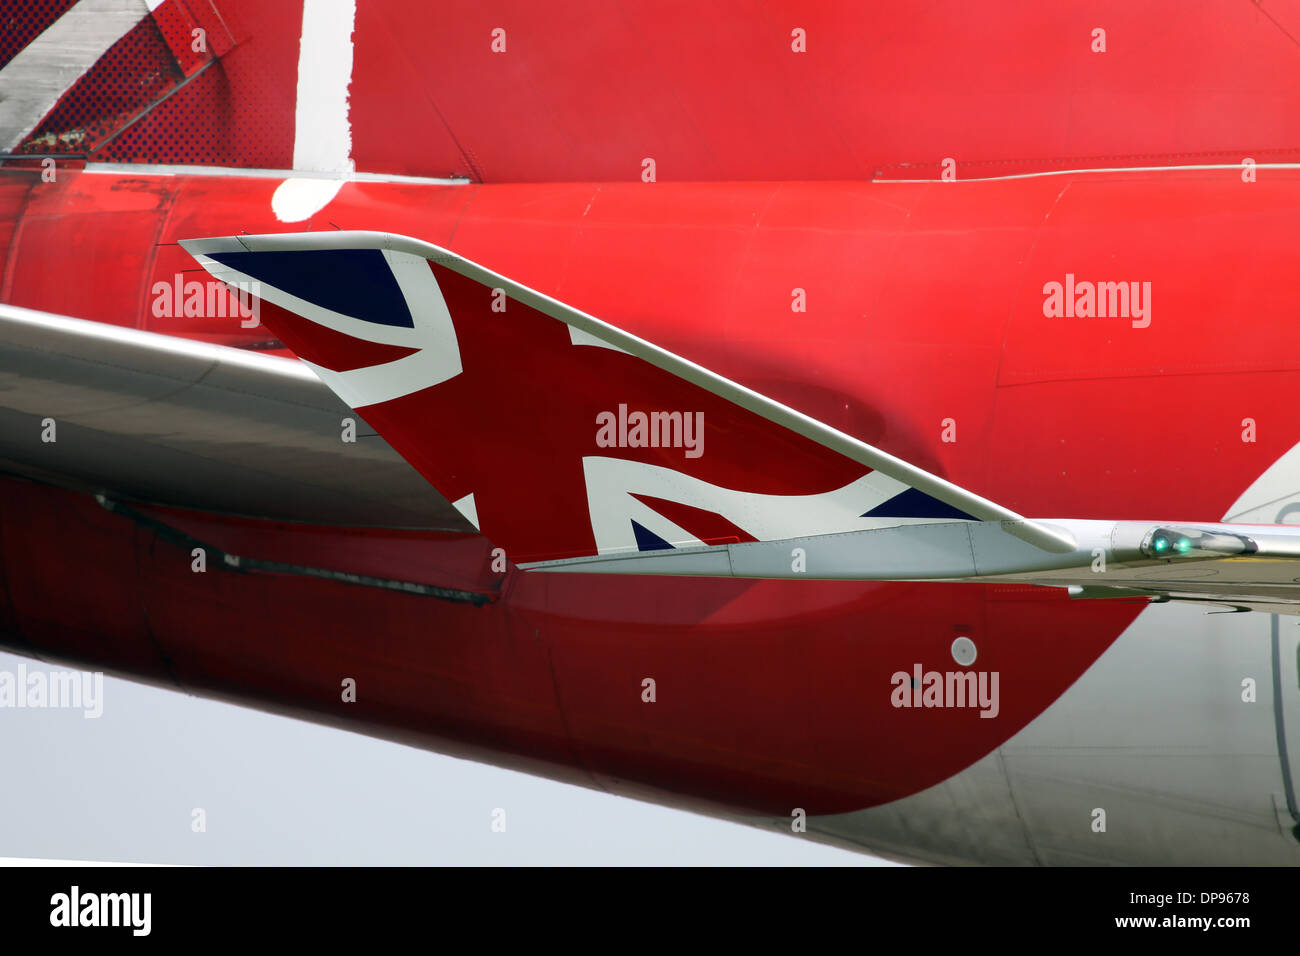 Winglet on the Boeing 747-400 Aircraft - Stock Image